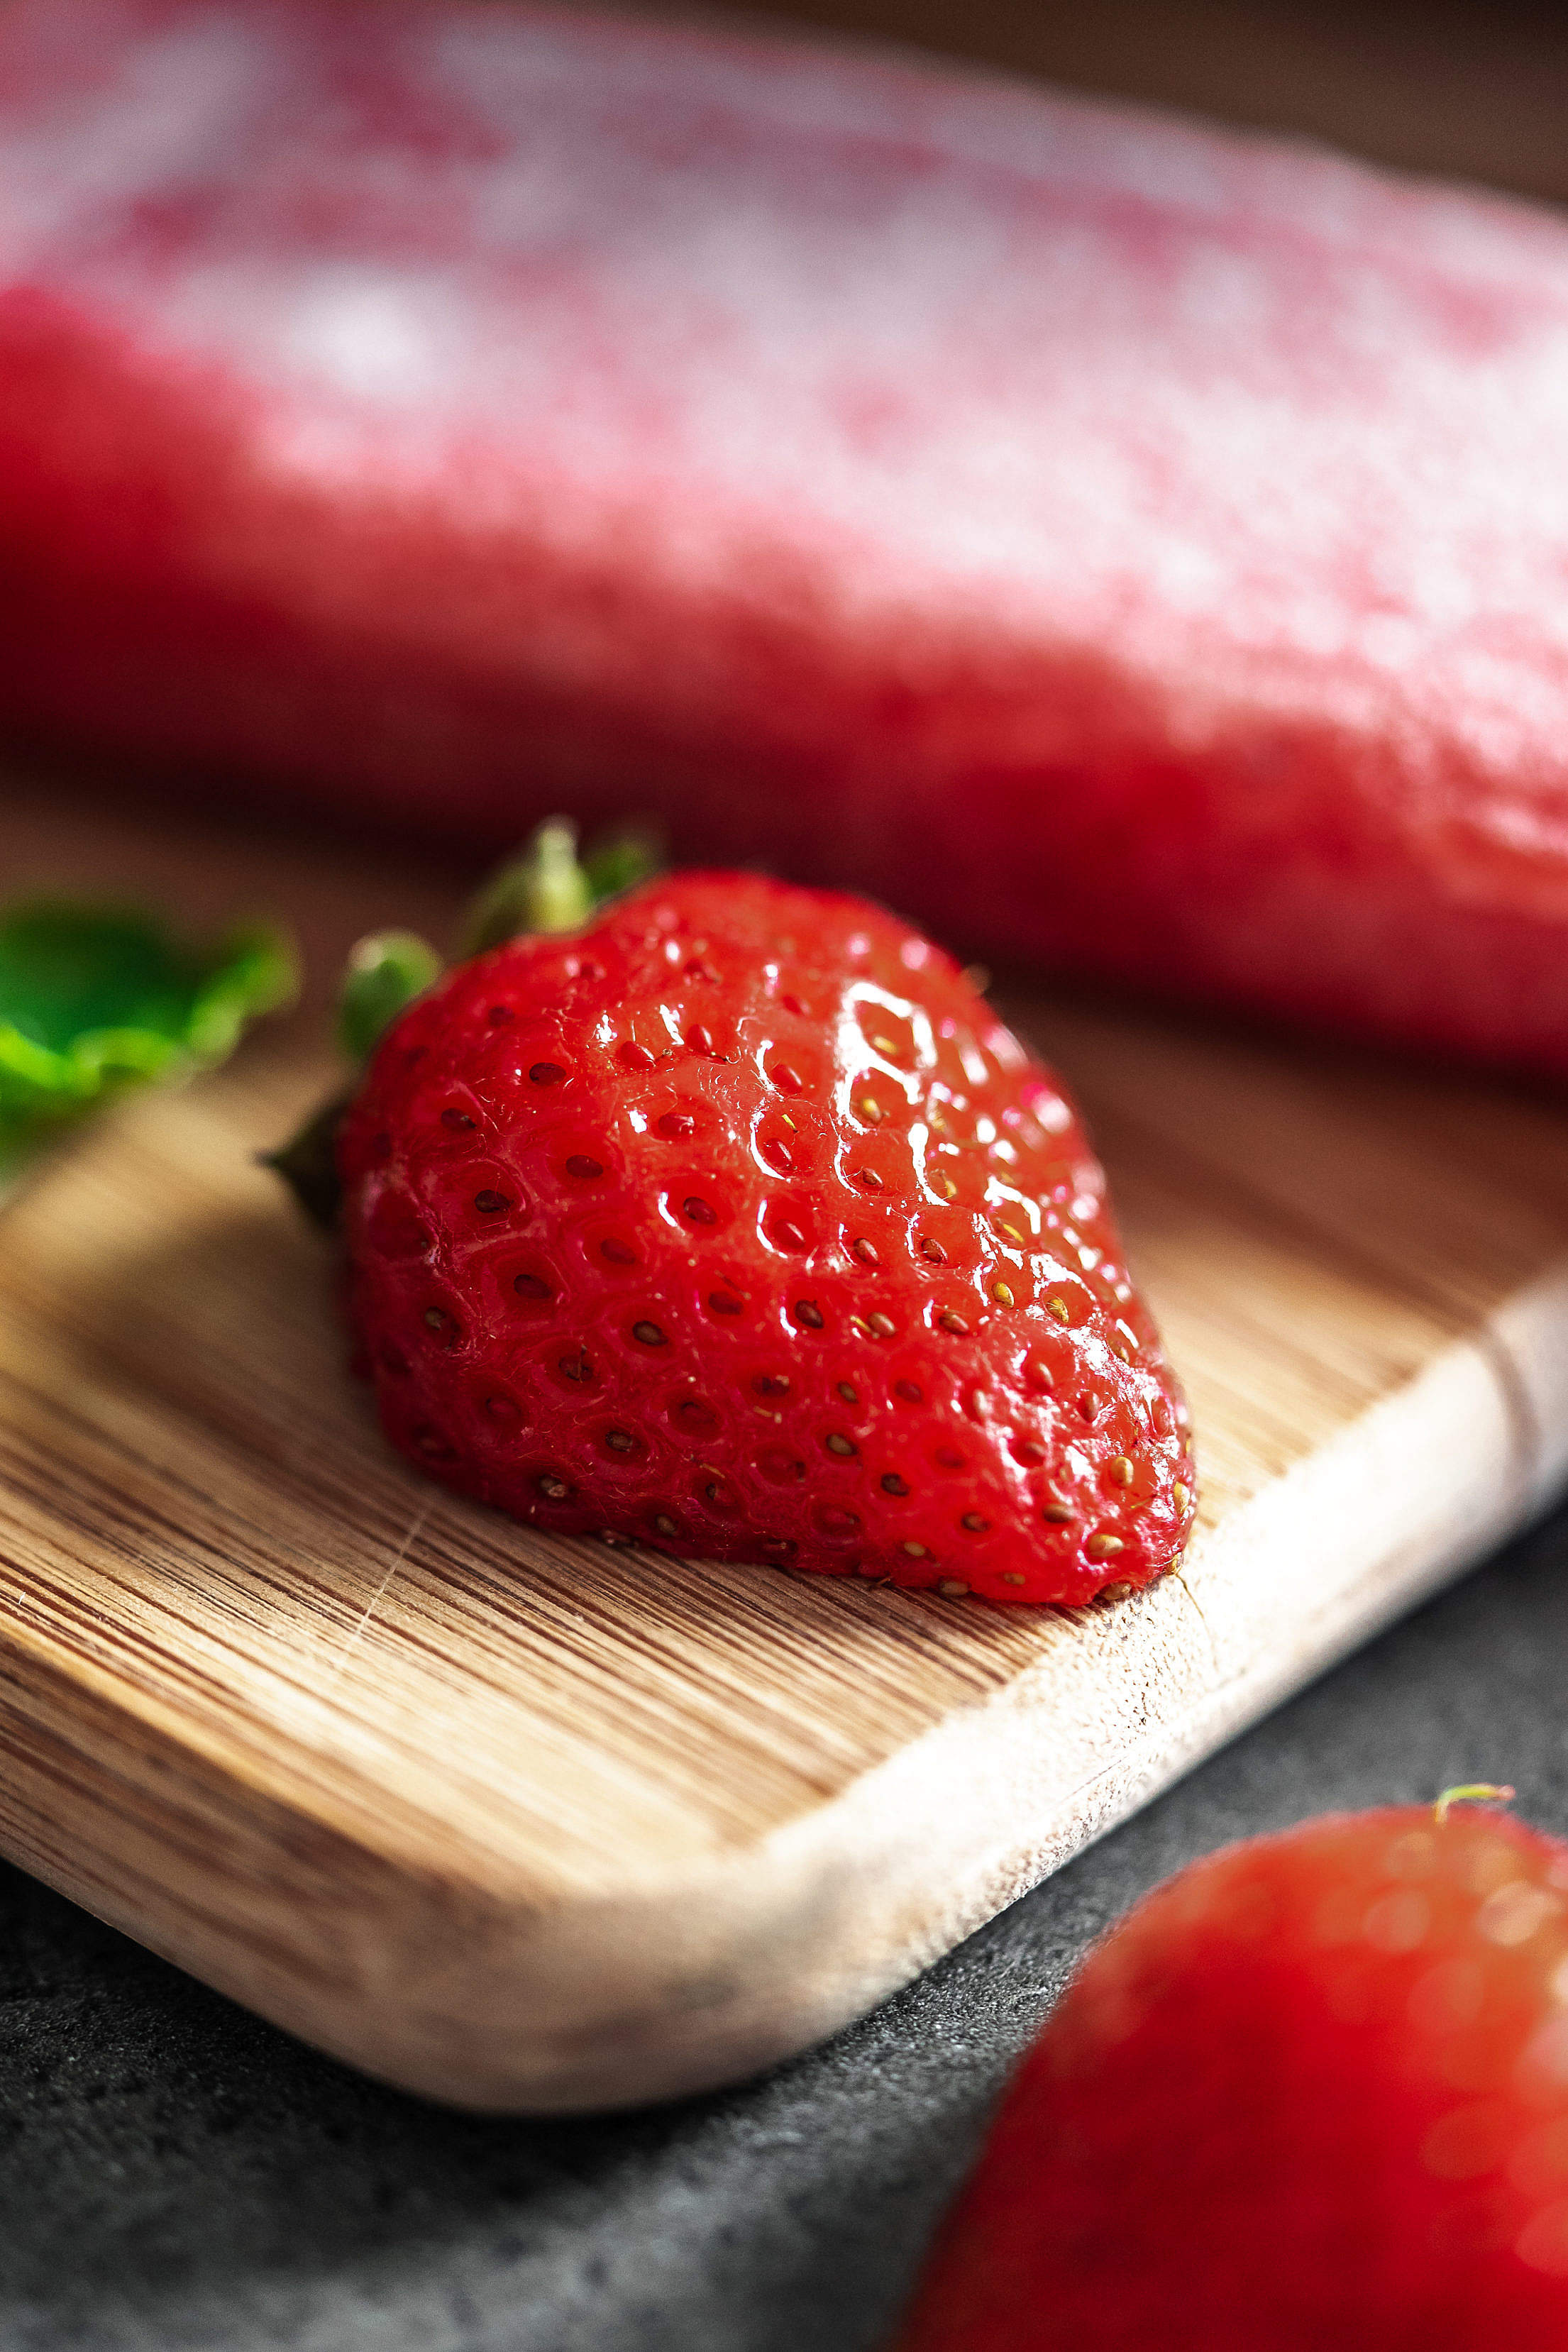 Homemade Strawberry Popsicles Free Stock Photo